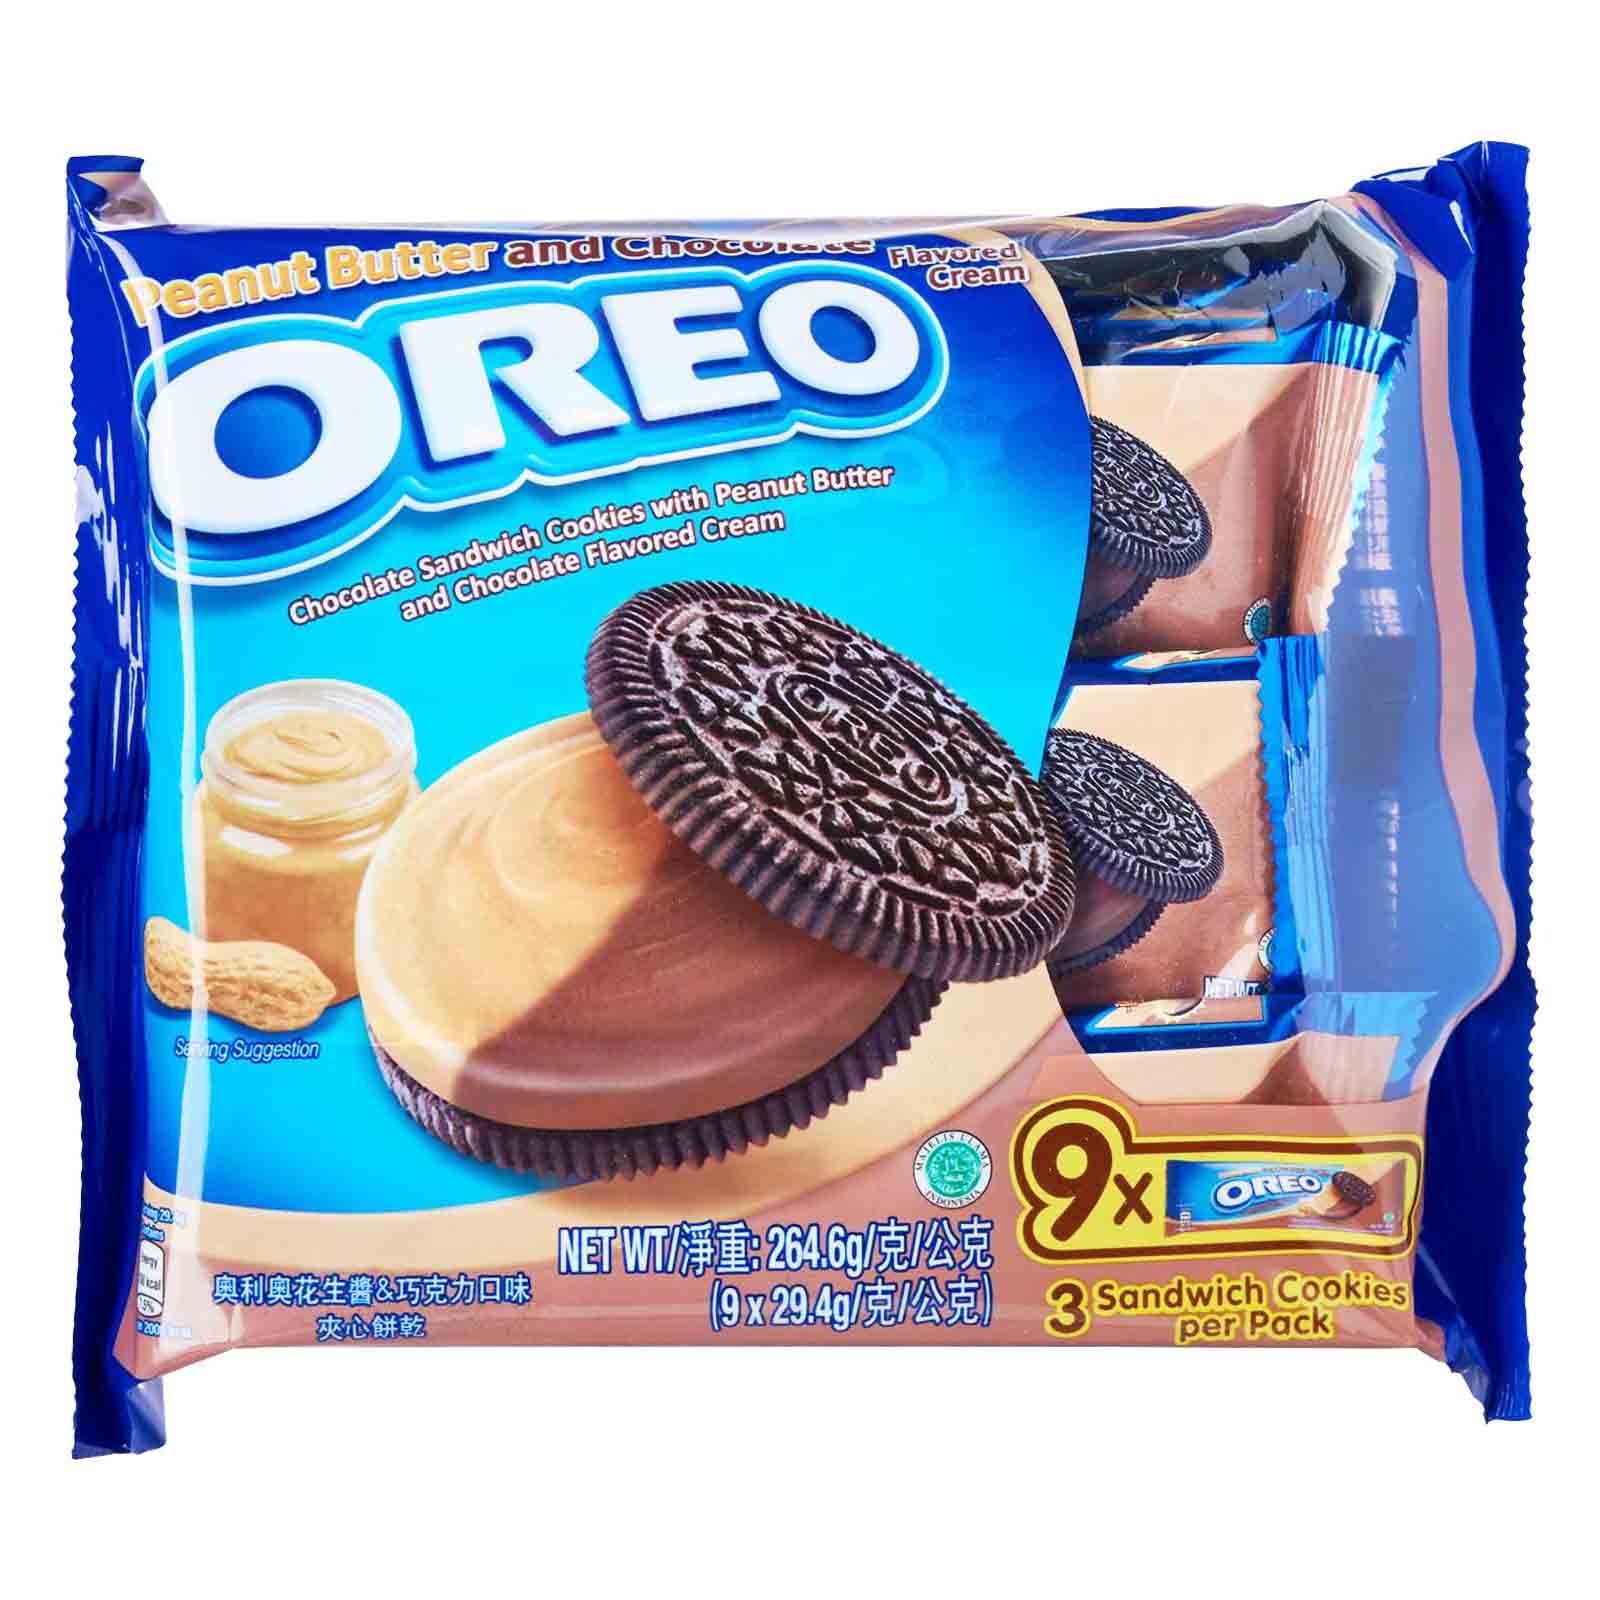 Oreo Sandwich Cookies Peanut Butter & Chocolate Cream -29.4gm (1x9x12Packs)